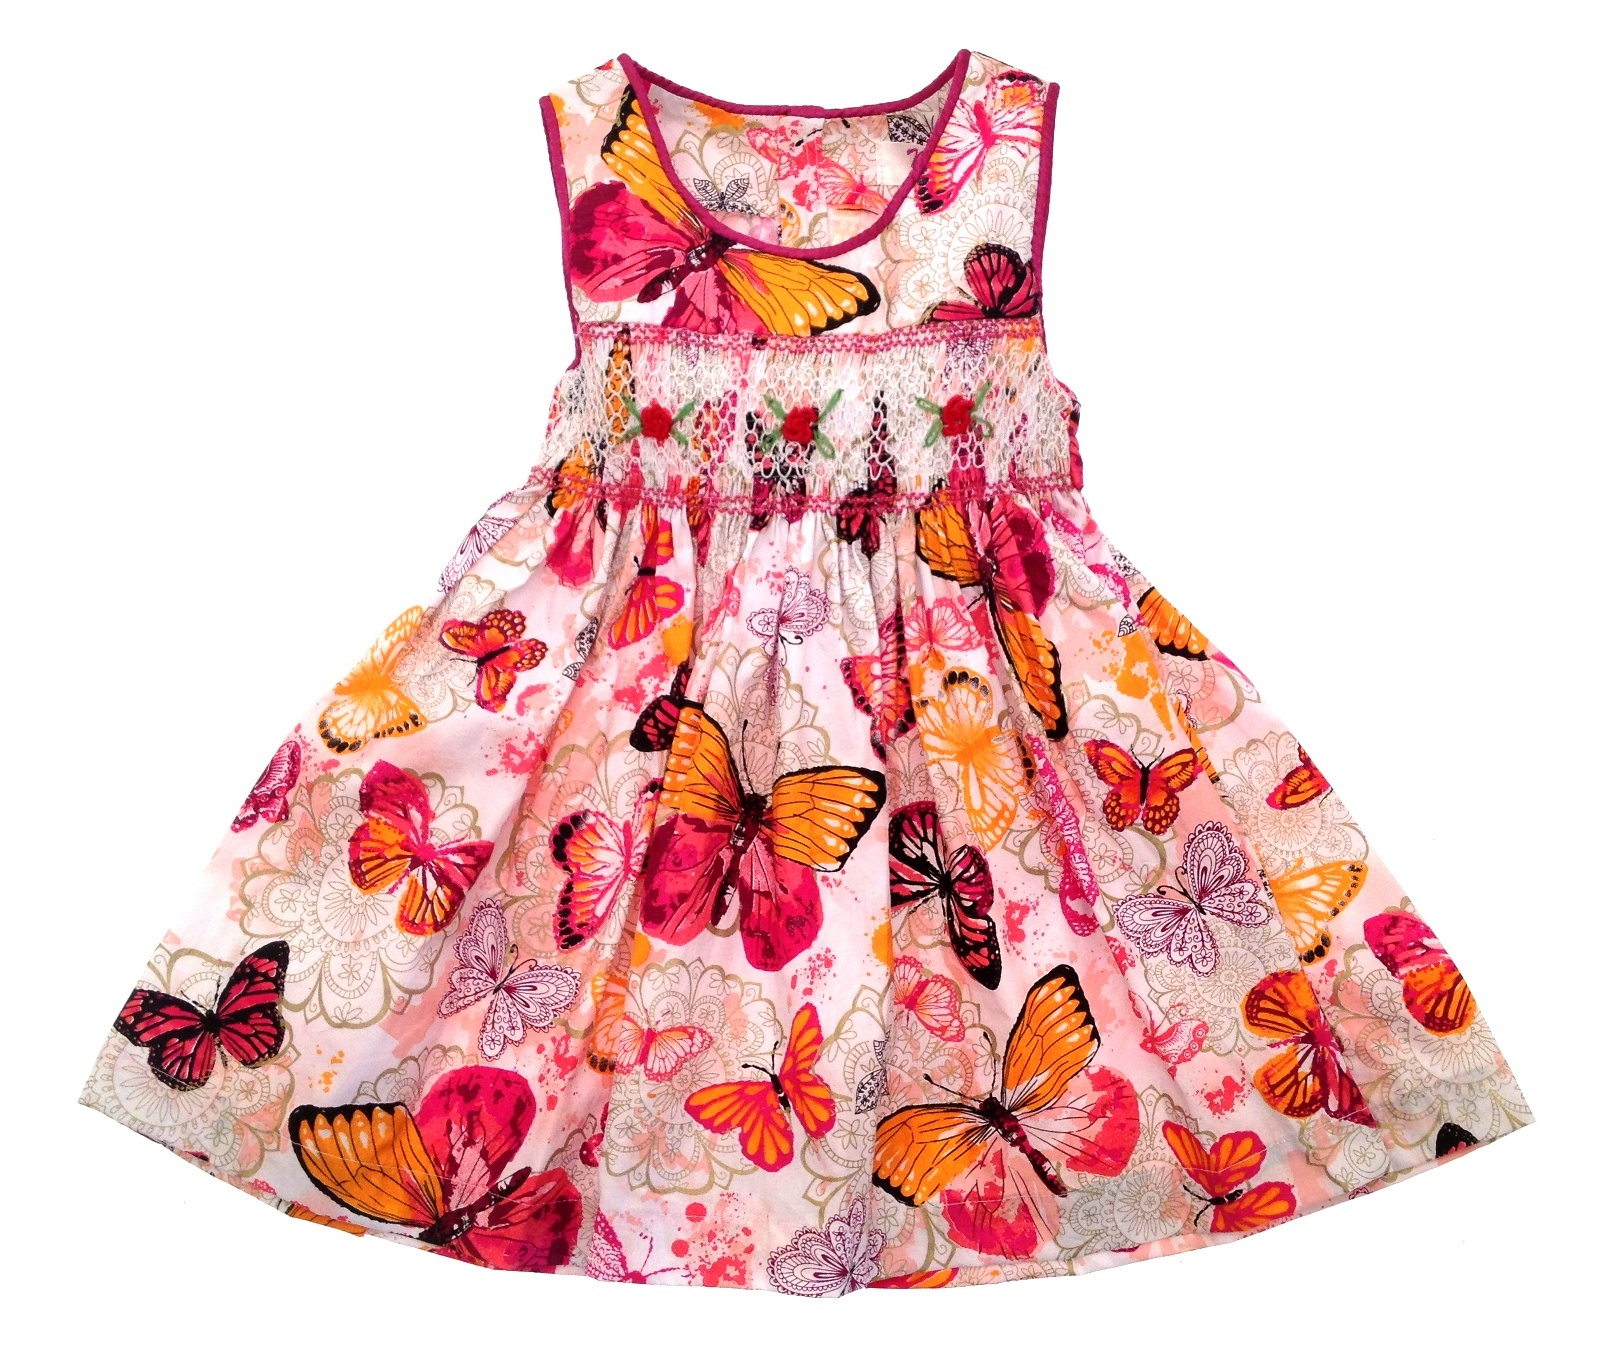 The dress was bigger than expected, but it can be altered. The dress is made out of great material and isn't really see-thru. Overall, it's an excellent dress for a girl's birthday party or summer dress.